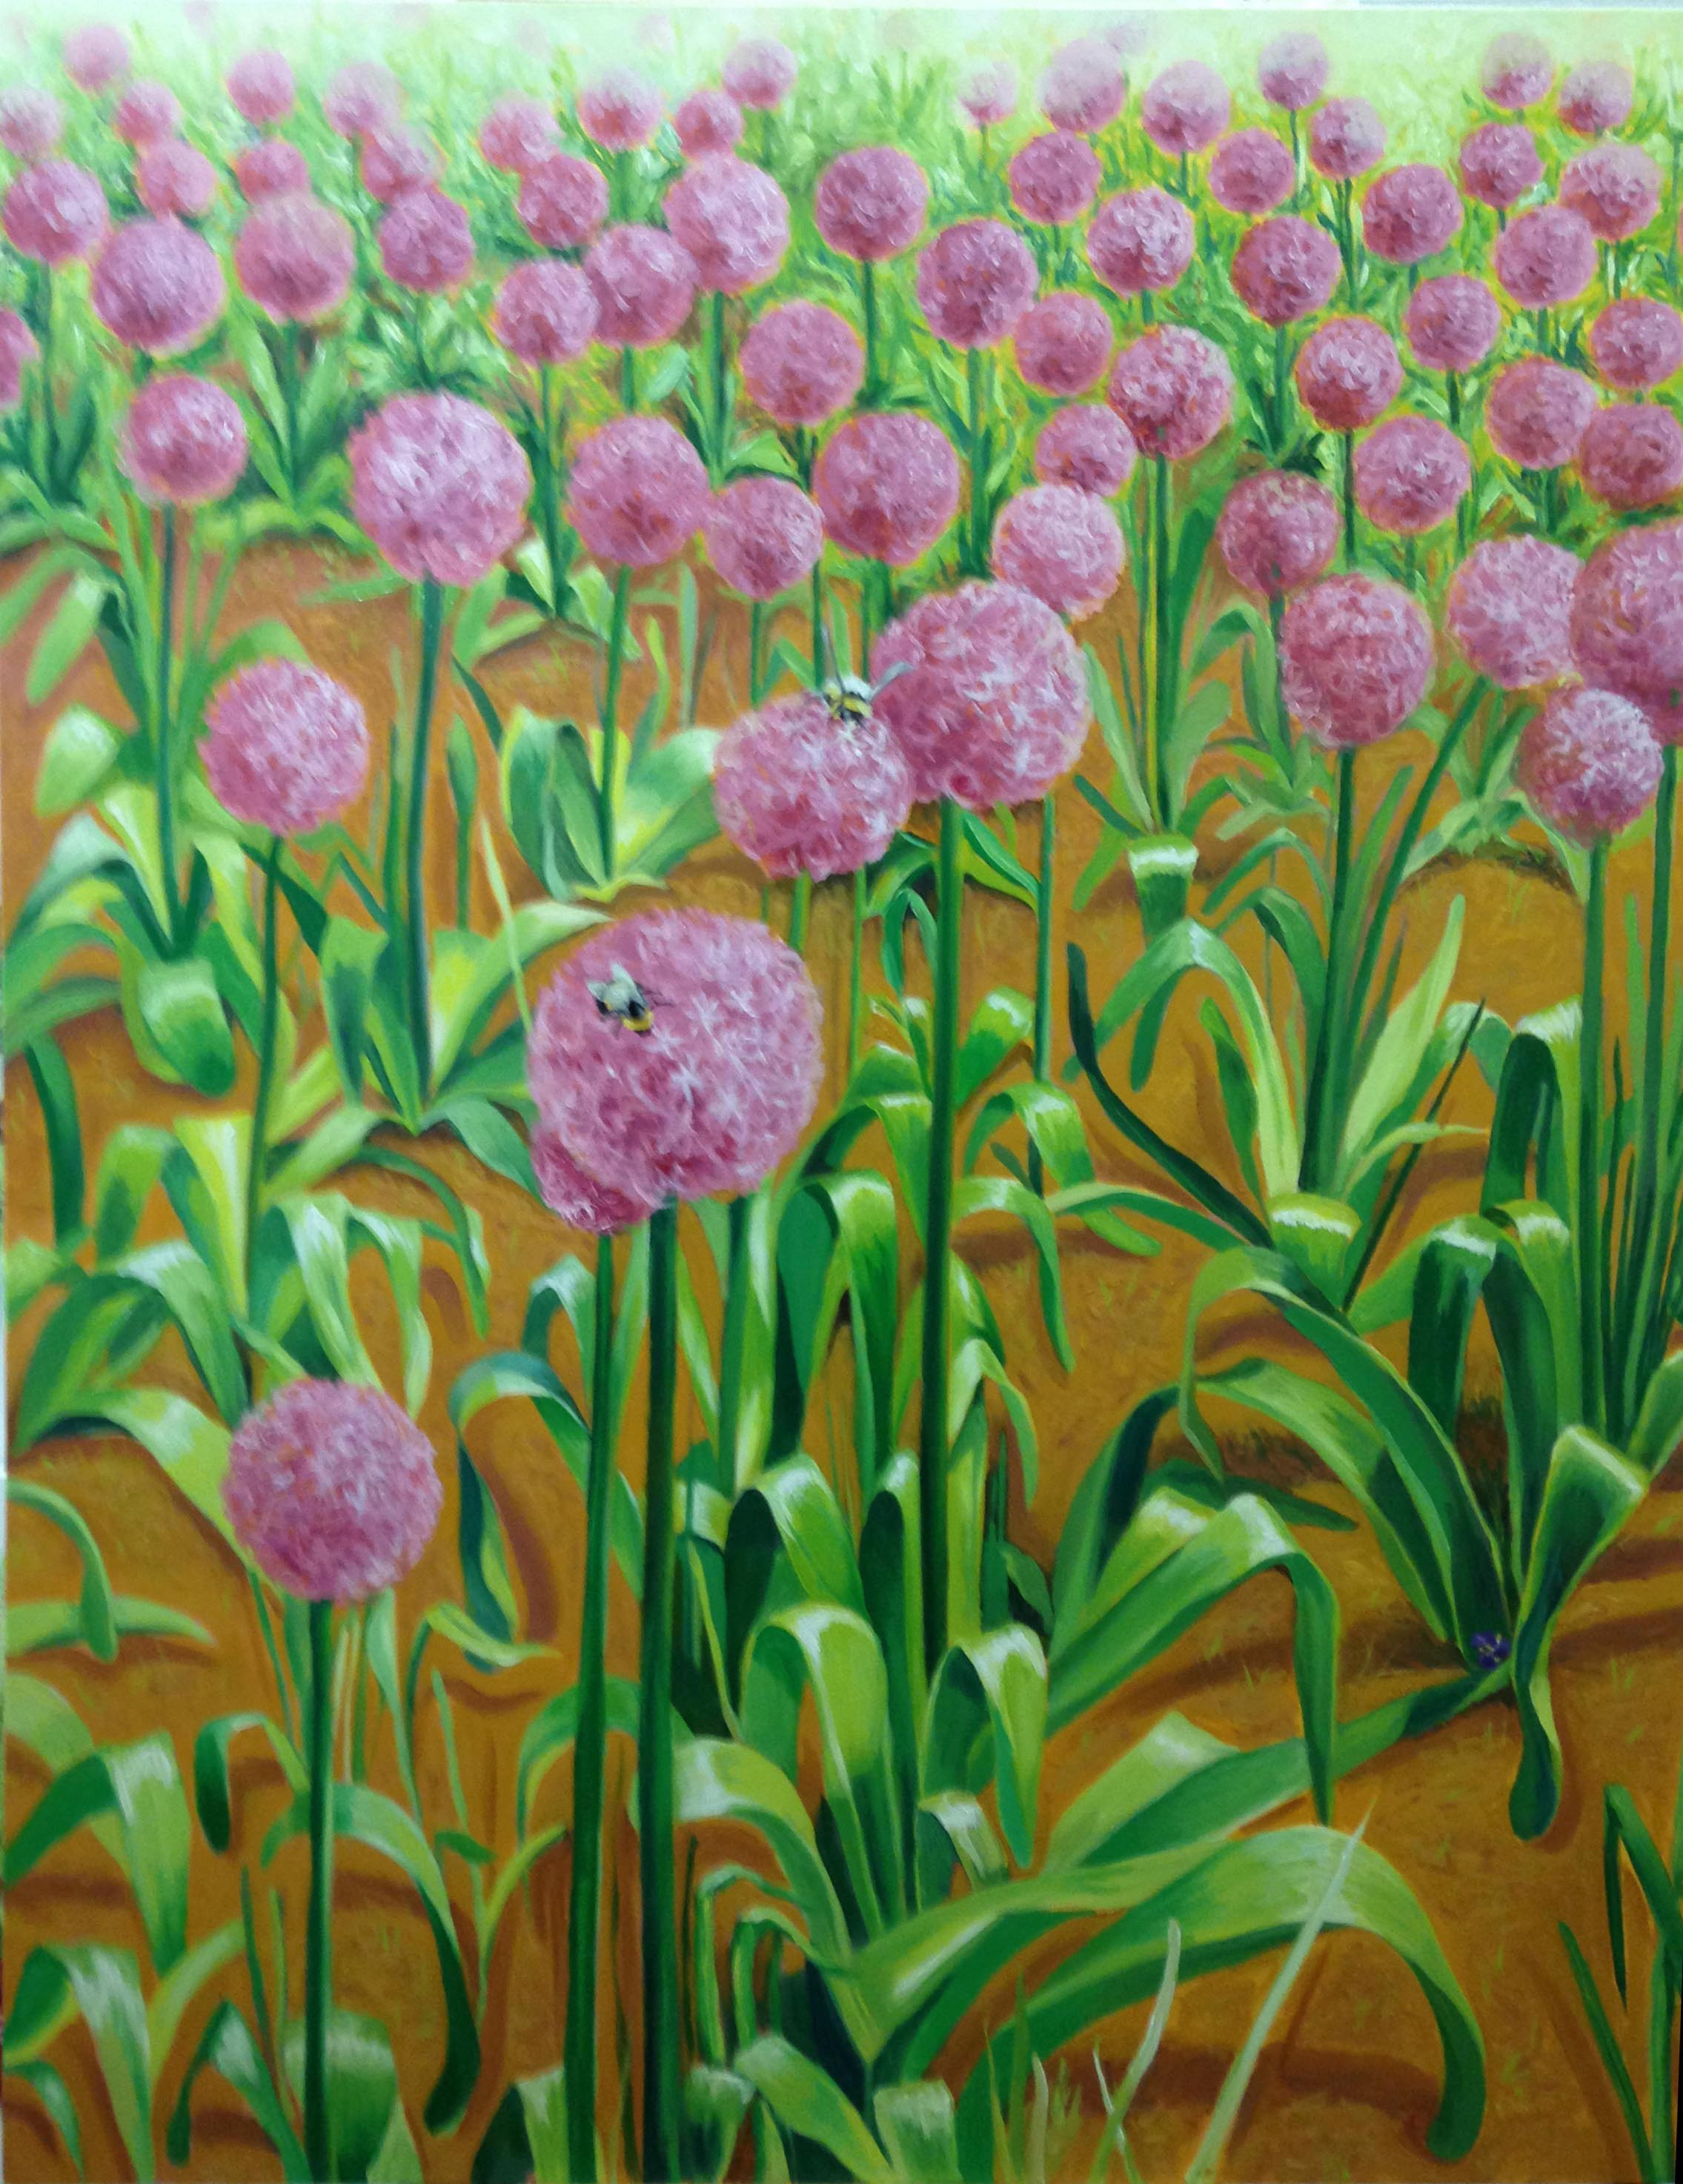 Allium Garden at Comcast , 2018, oil on canvas, 48 x 60 inches